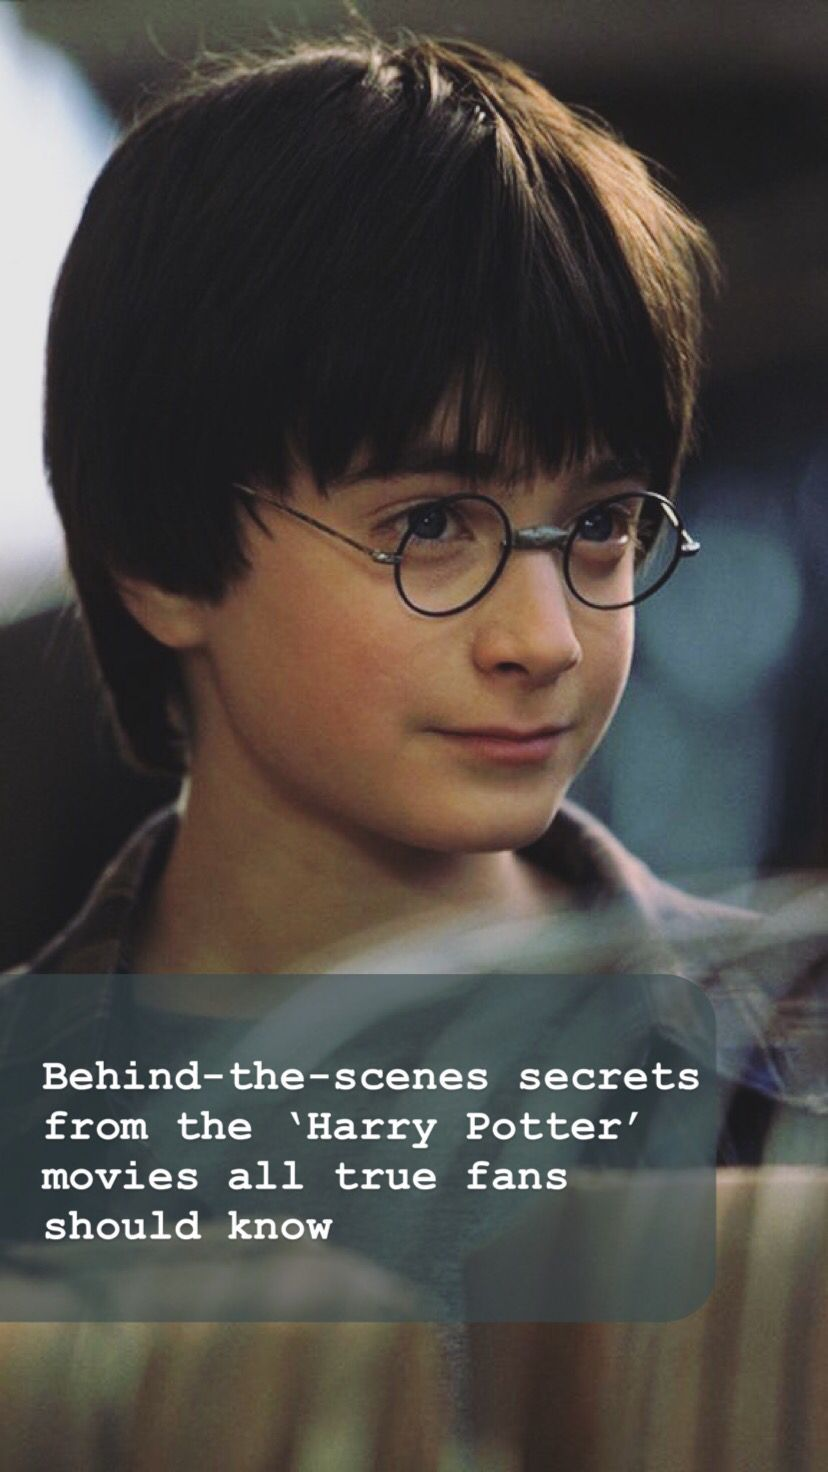 15 behind-the-scenes secrets from the 'Harry Potter ...Young James Potter Scene